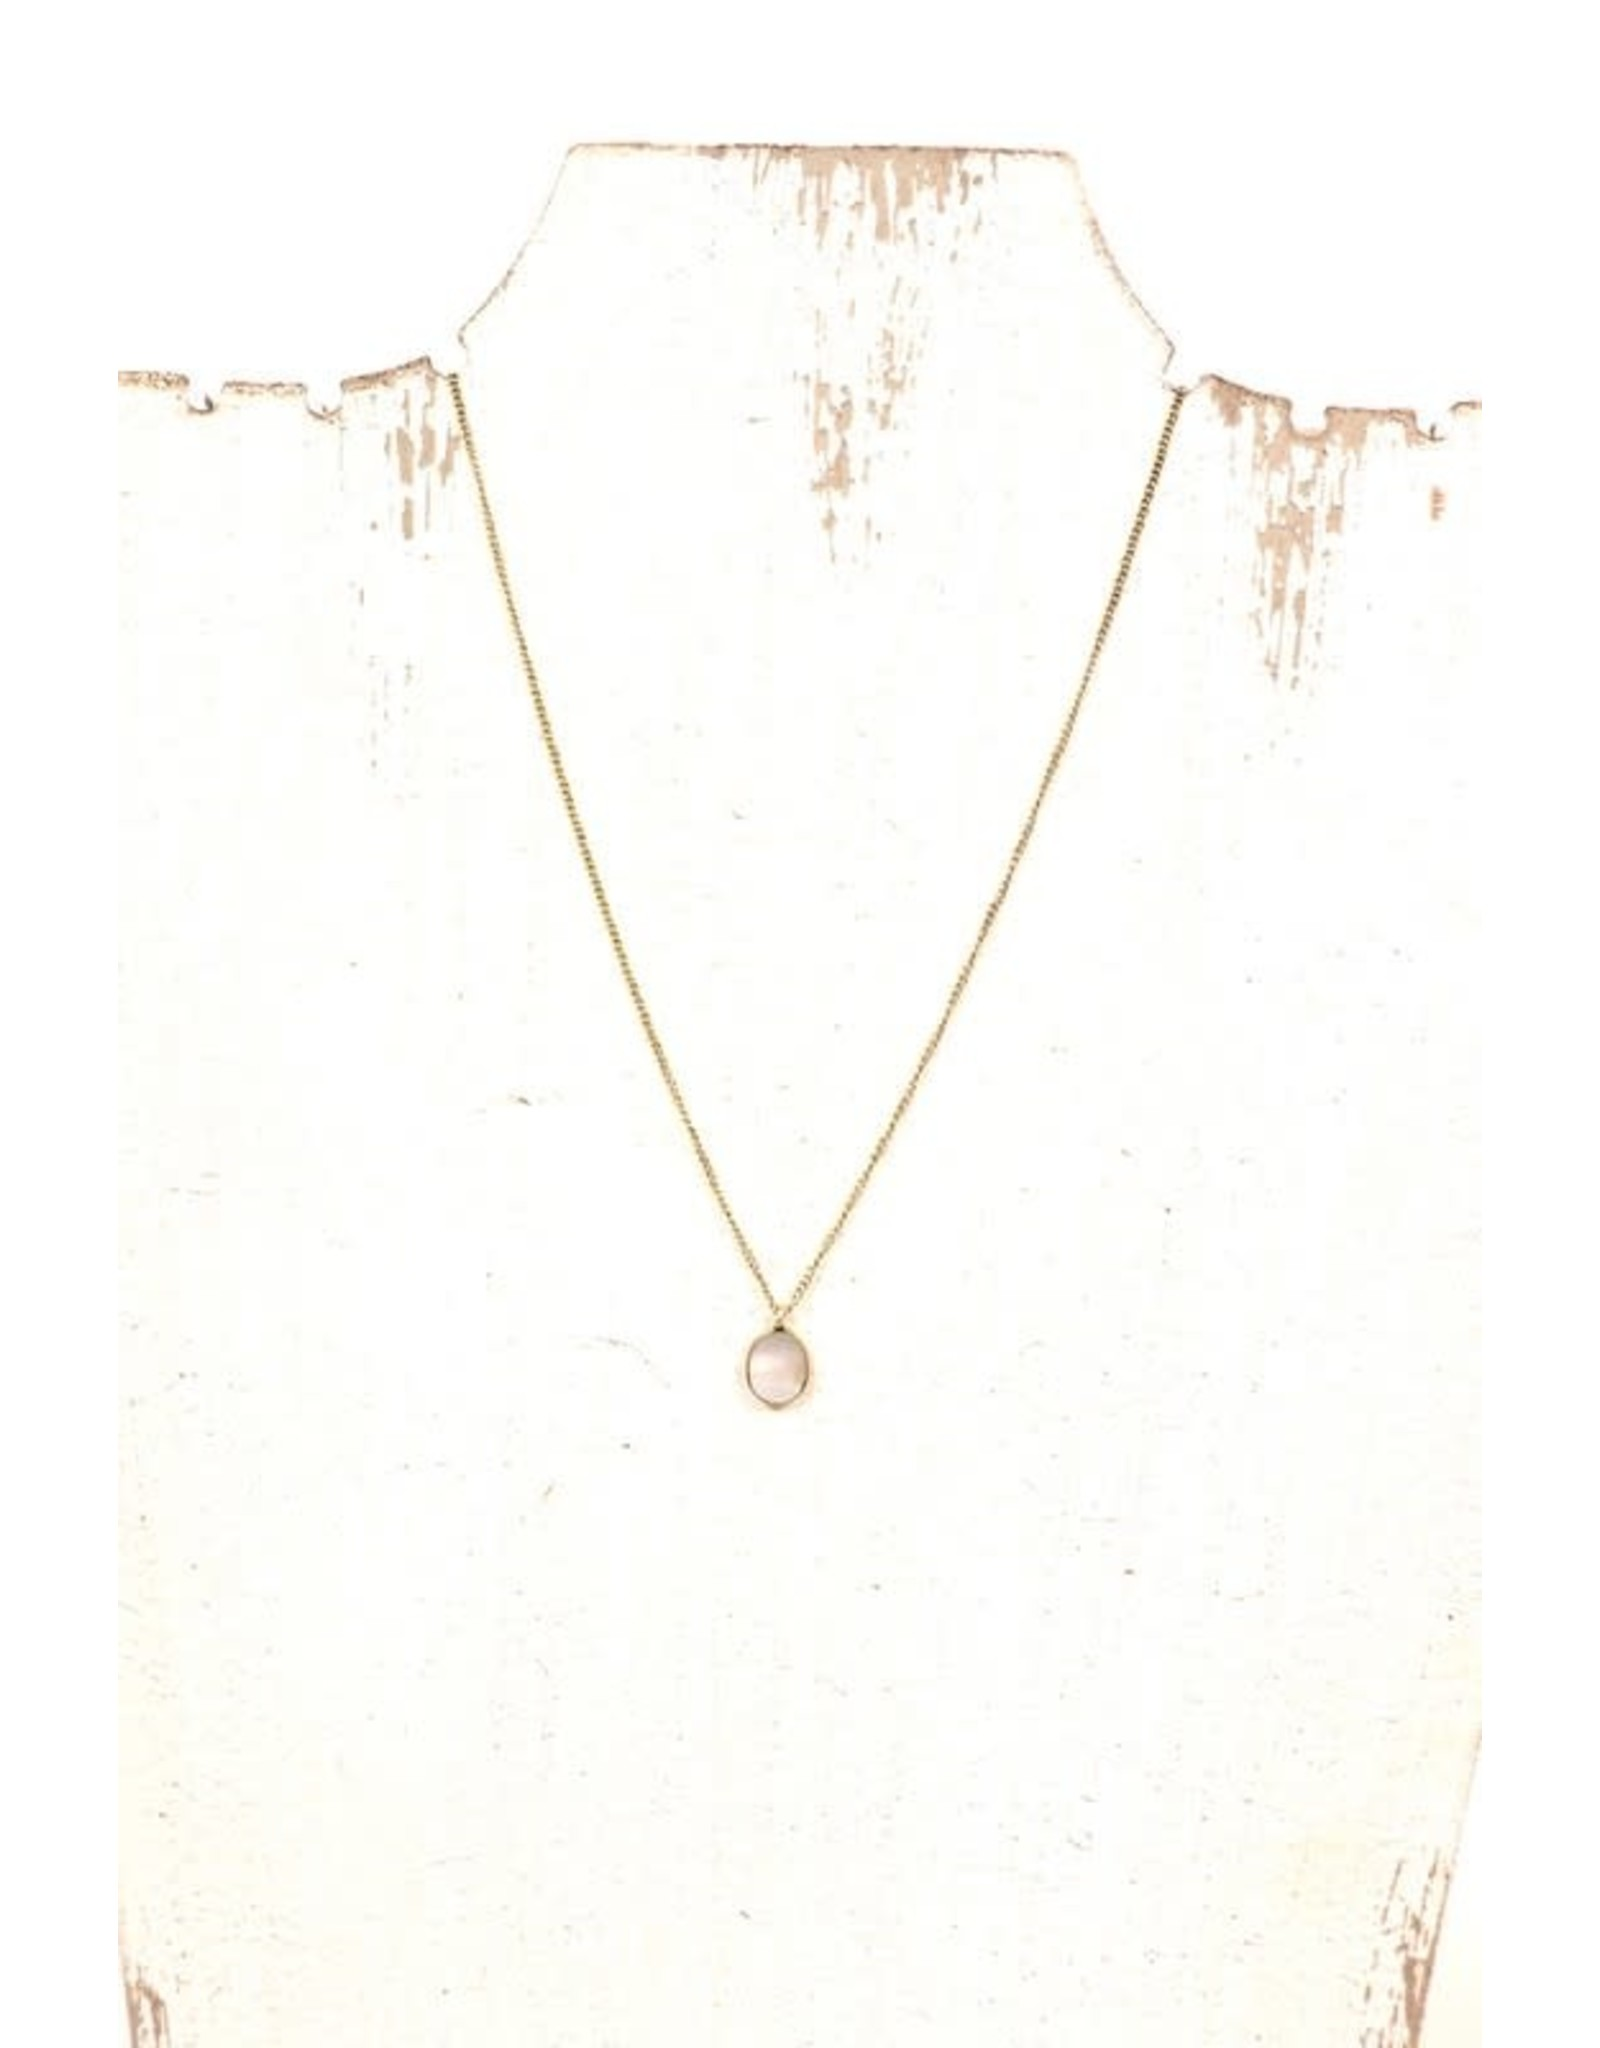 GOLD OPAL PRECIOUS STONE CHARM NECKLACE N-147